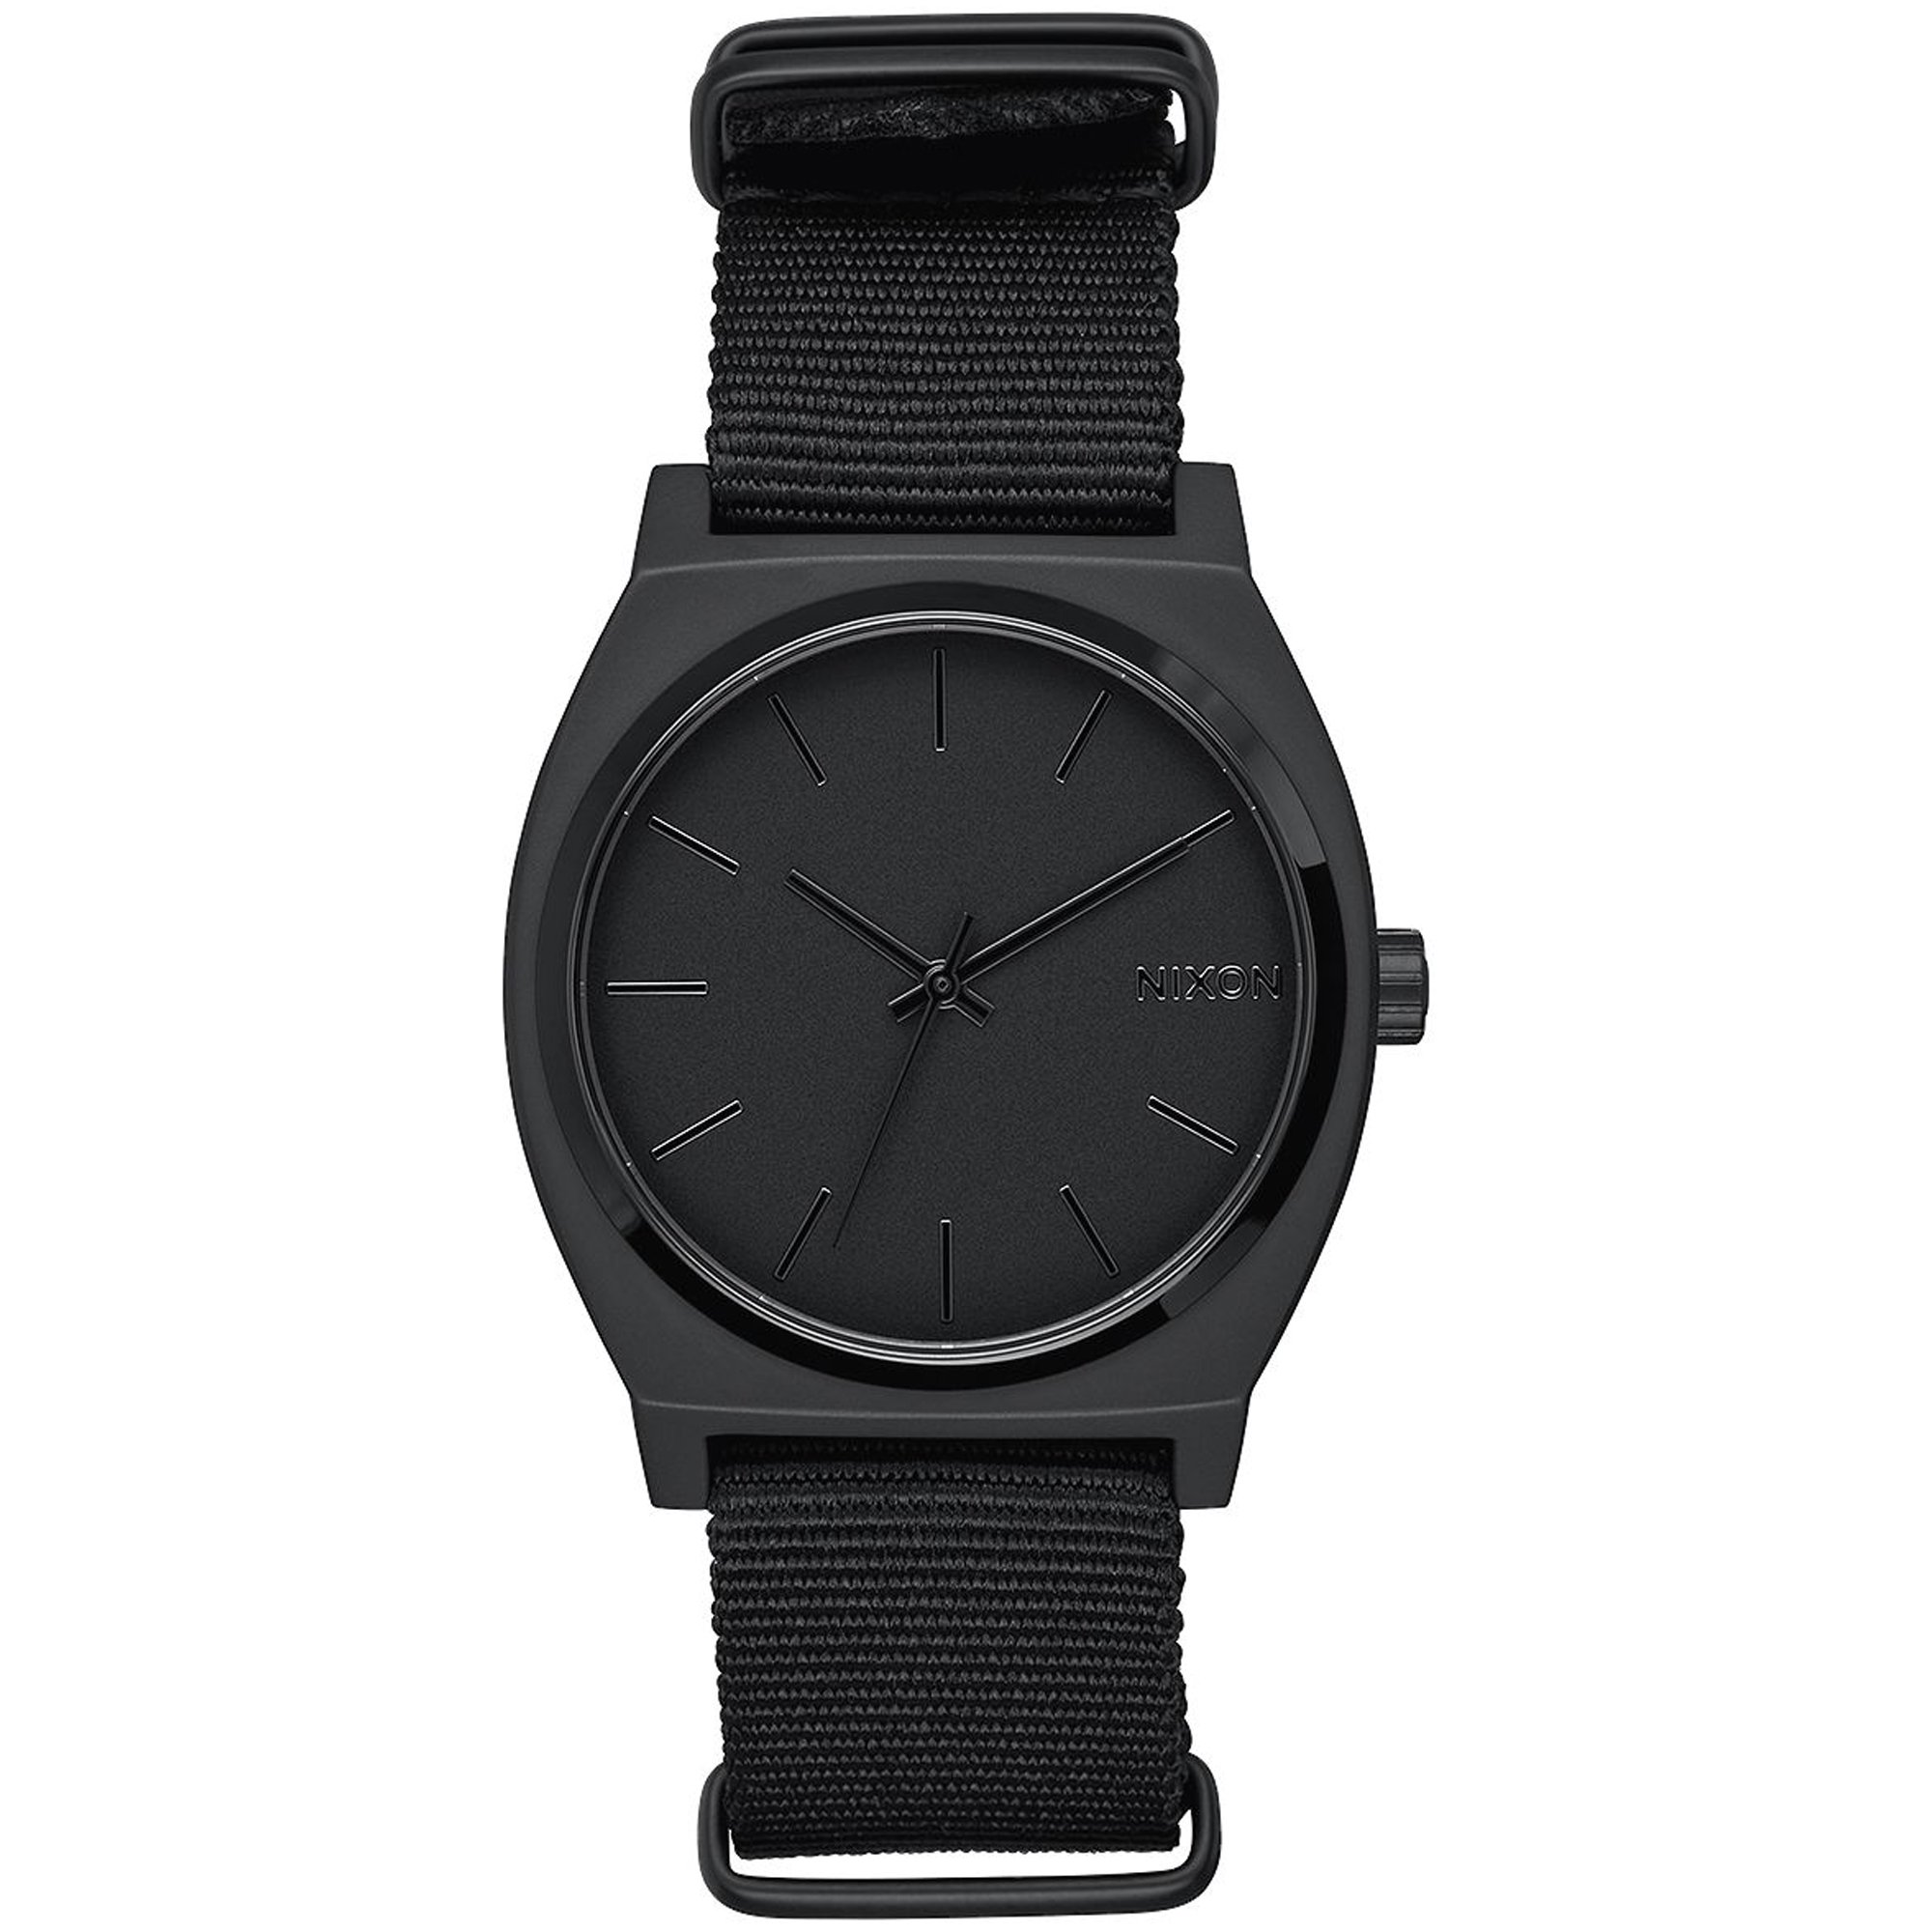 NEW Nixon Time Teller Nato Watch All Black by NIXON